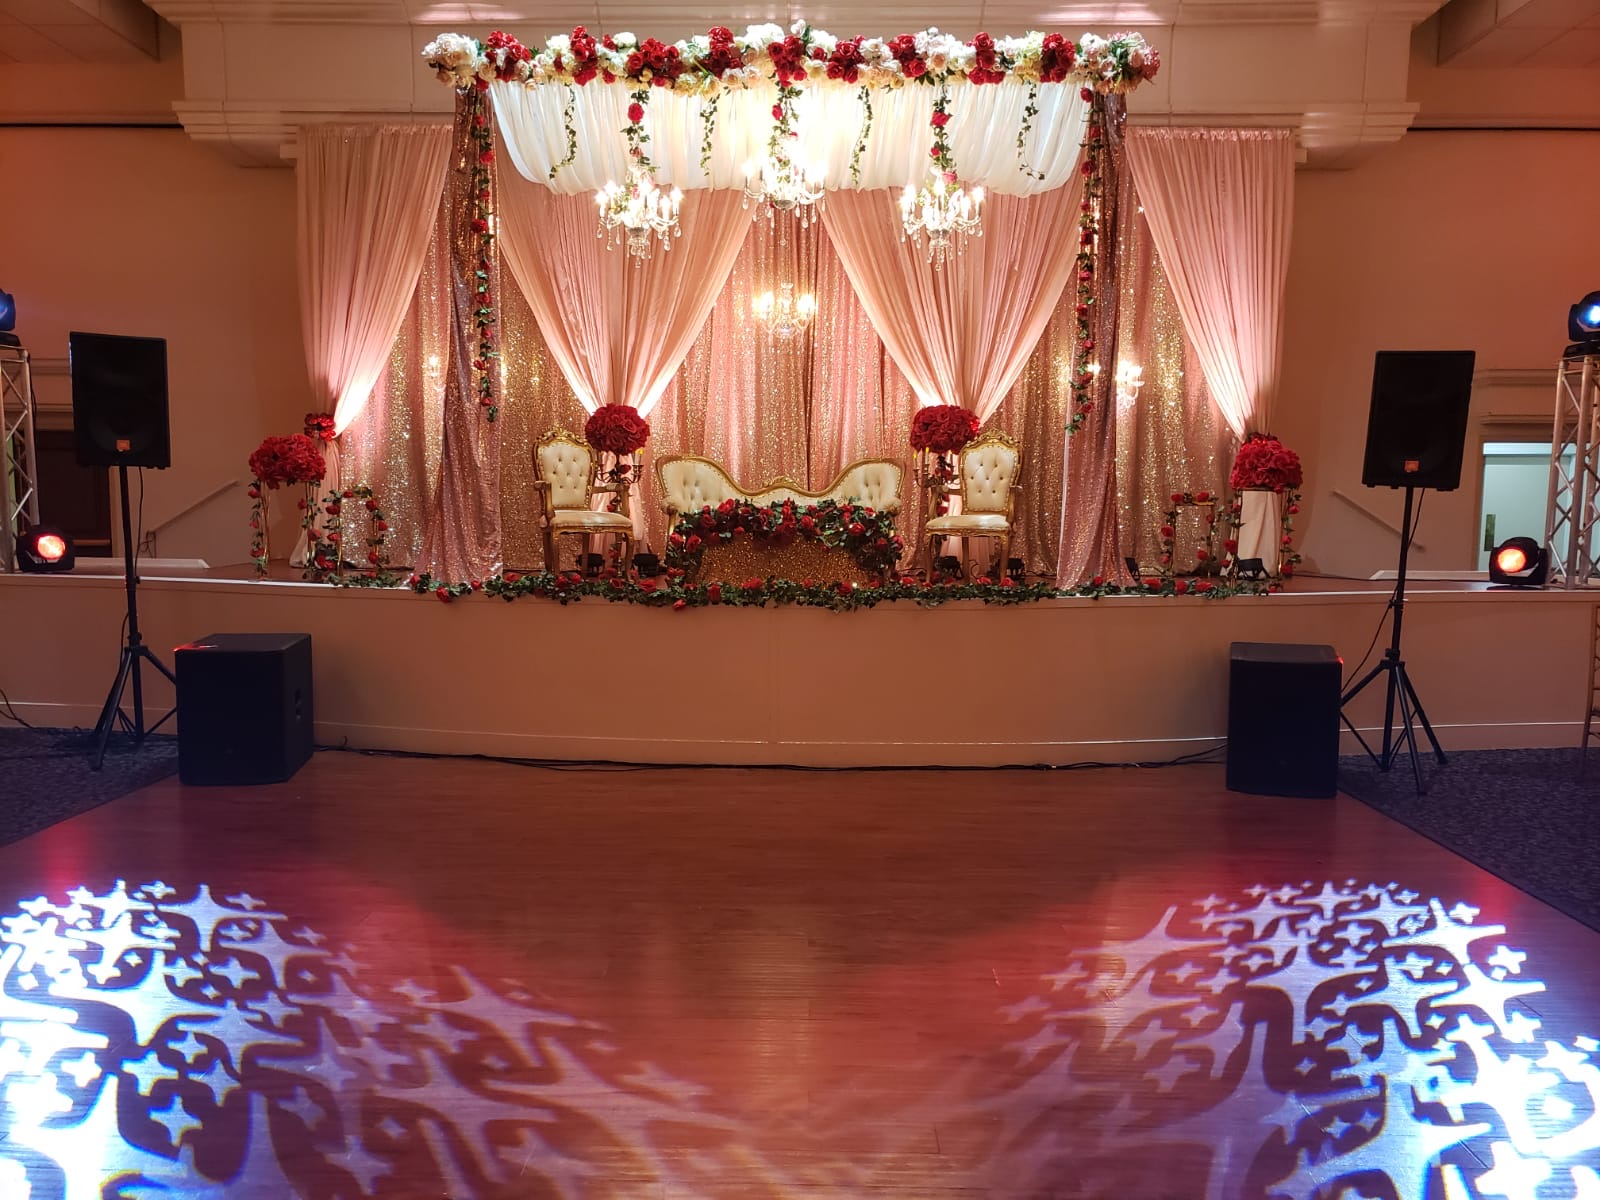 Indian Wedding Ceremony Decor, Indian Wedding Sangeet Decorations, Indian Wedding Reception Decor, J